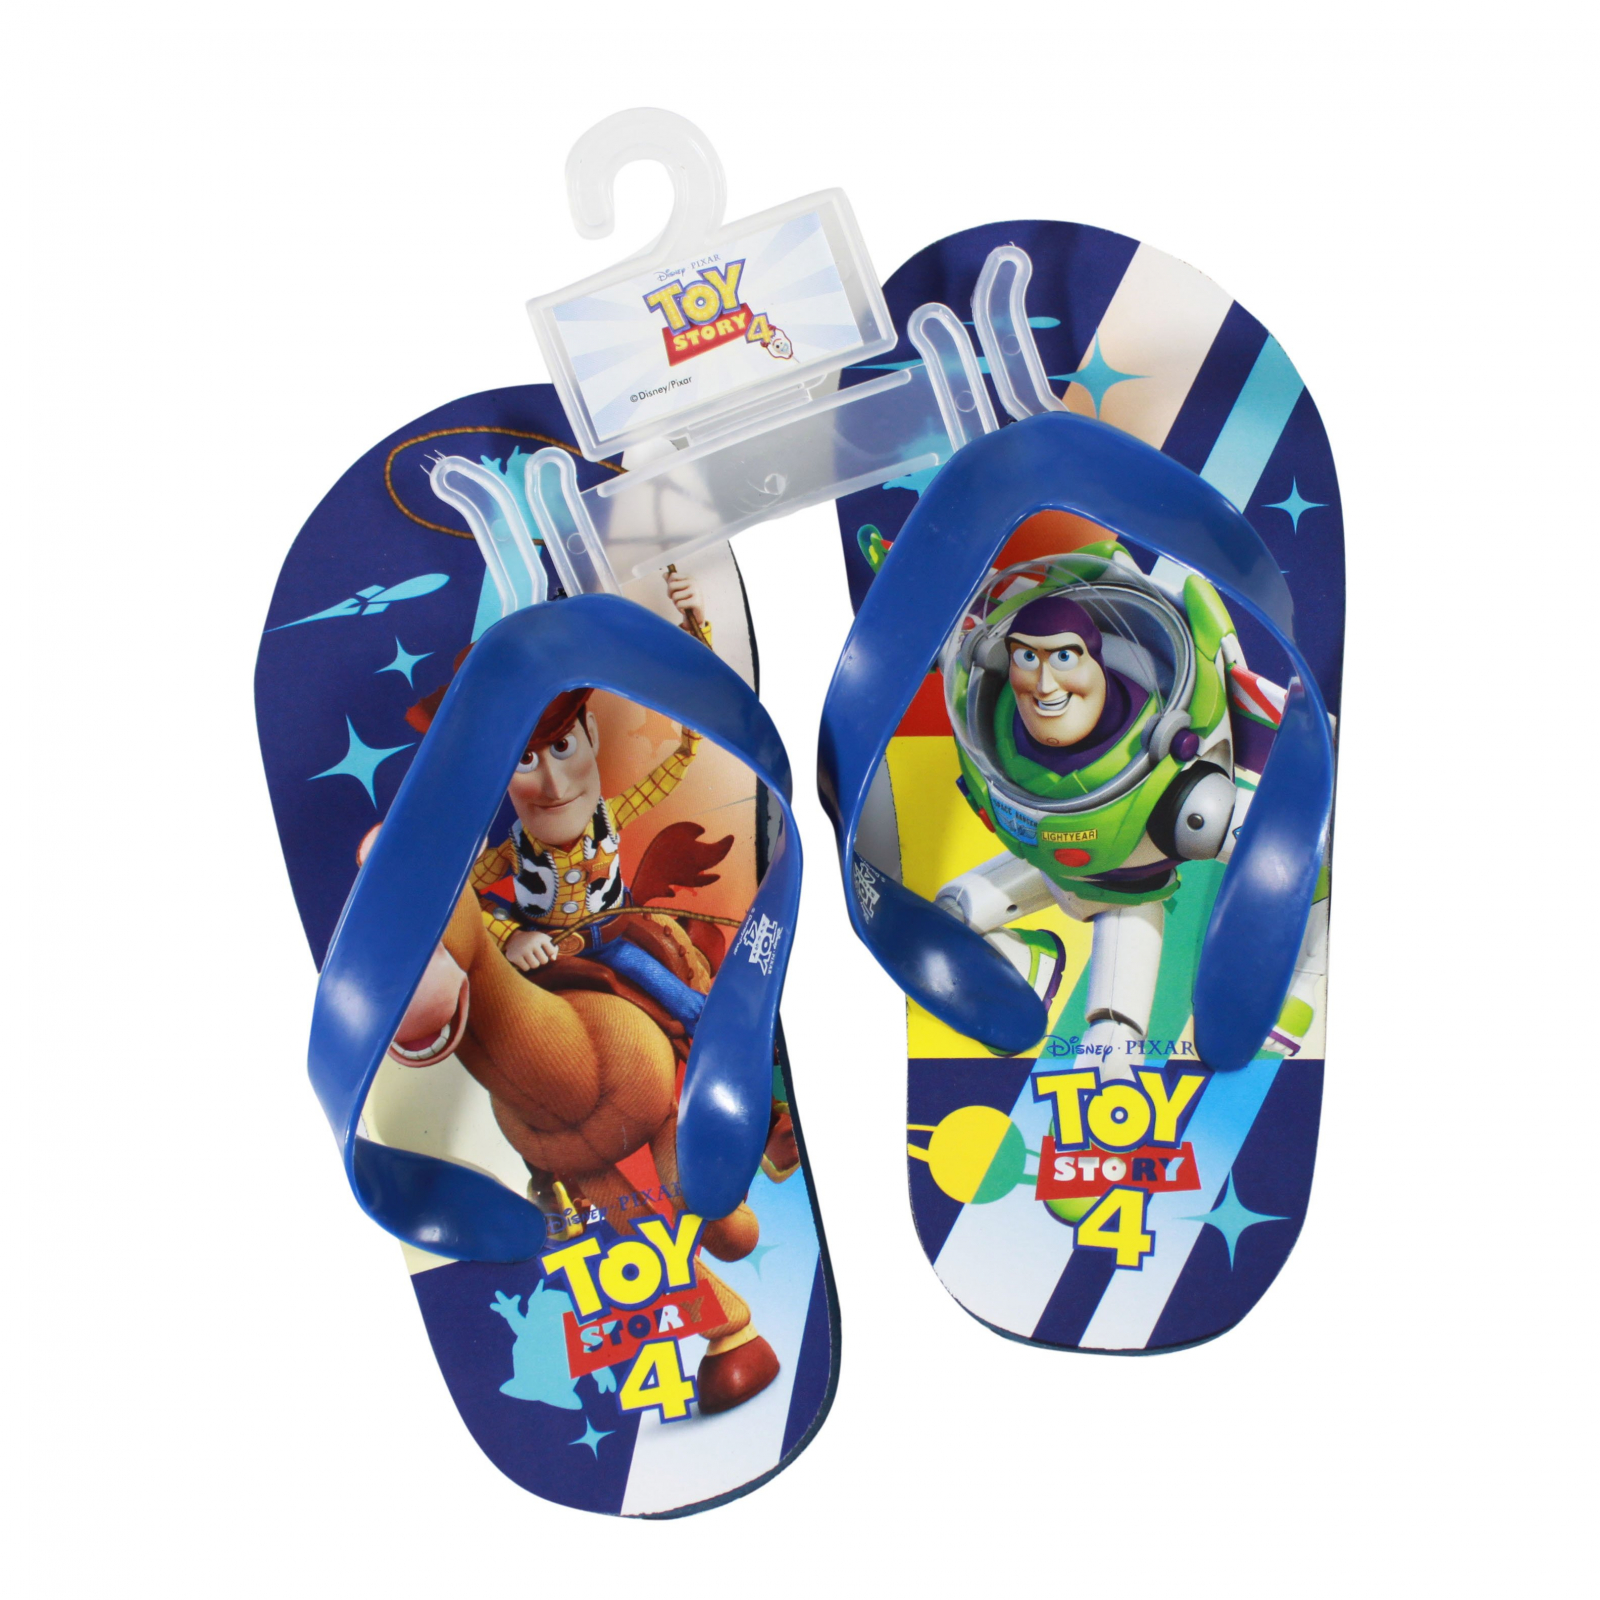 Disney Pixar Toy Story 4 Kids Sandals Blue Strap Small 5/6